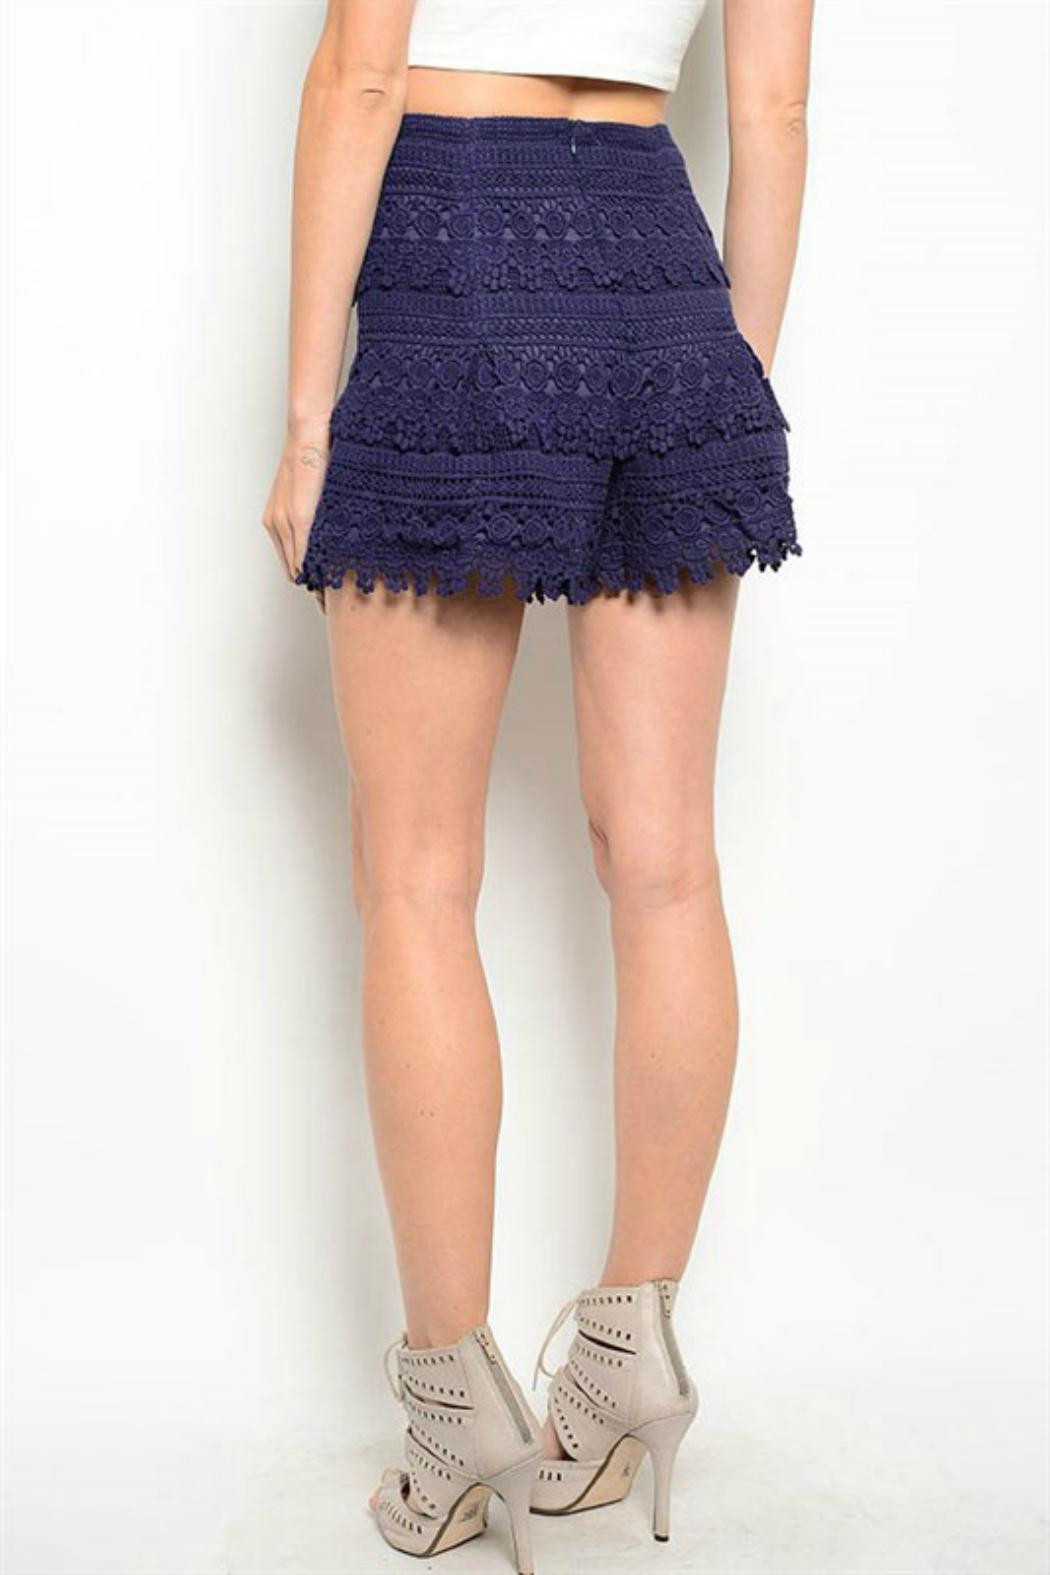 Lace Crochet Shorts Lovely Pretty Little Things Crochet Lace Shorts From New Of Wonderful 49 Images Lace Crochet Shorts